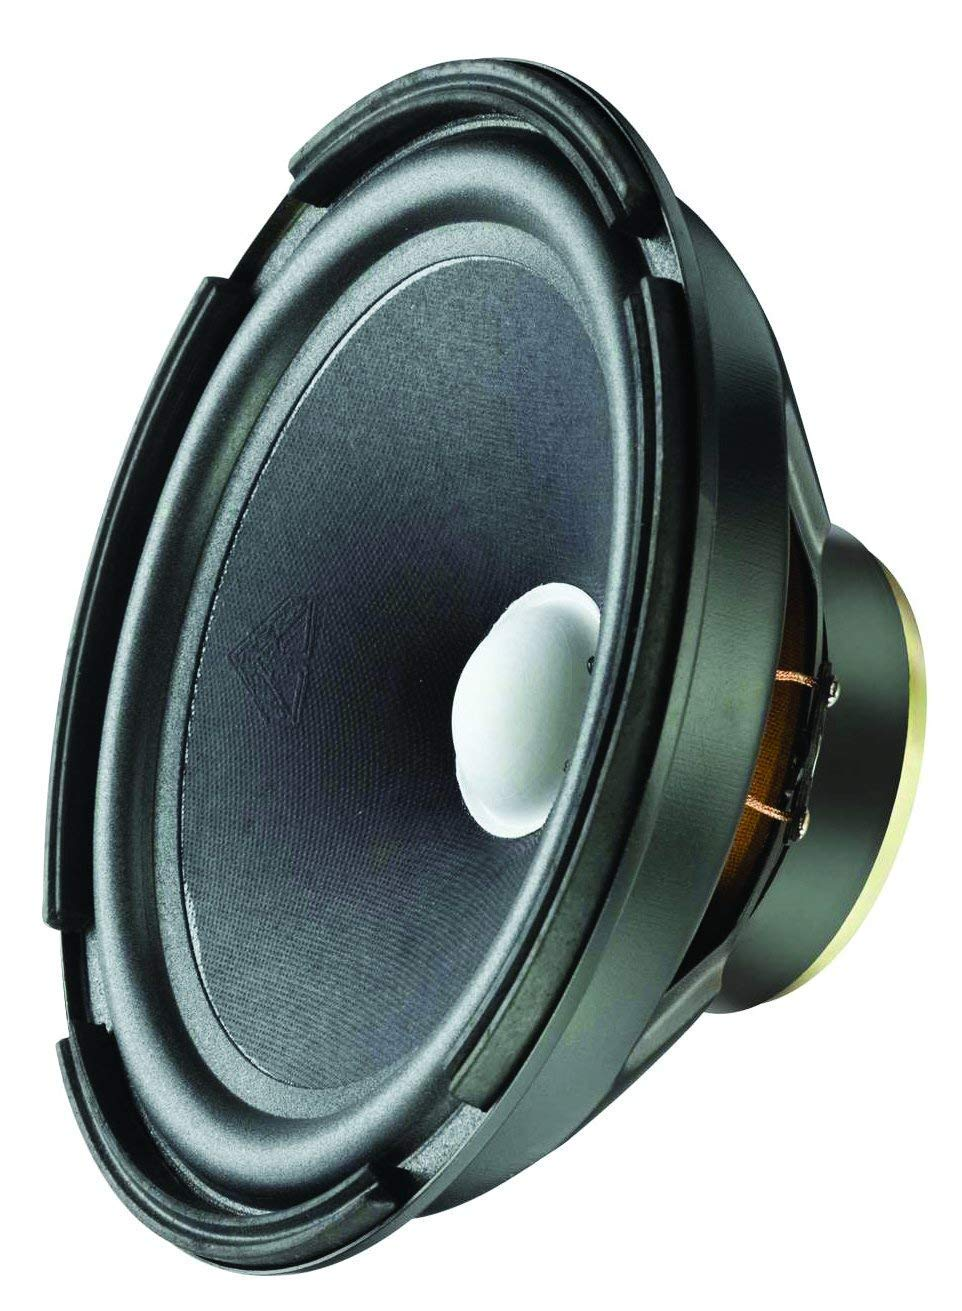 Sweton 40 Watt Speaker Woofer 8 Inch 4 Ohm Price 60 Subwoofer Amplifer Circuit Buy Online In India